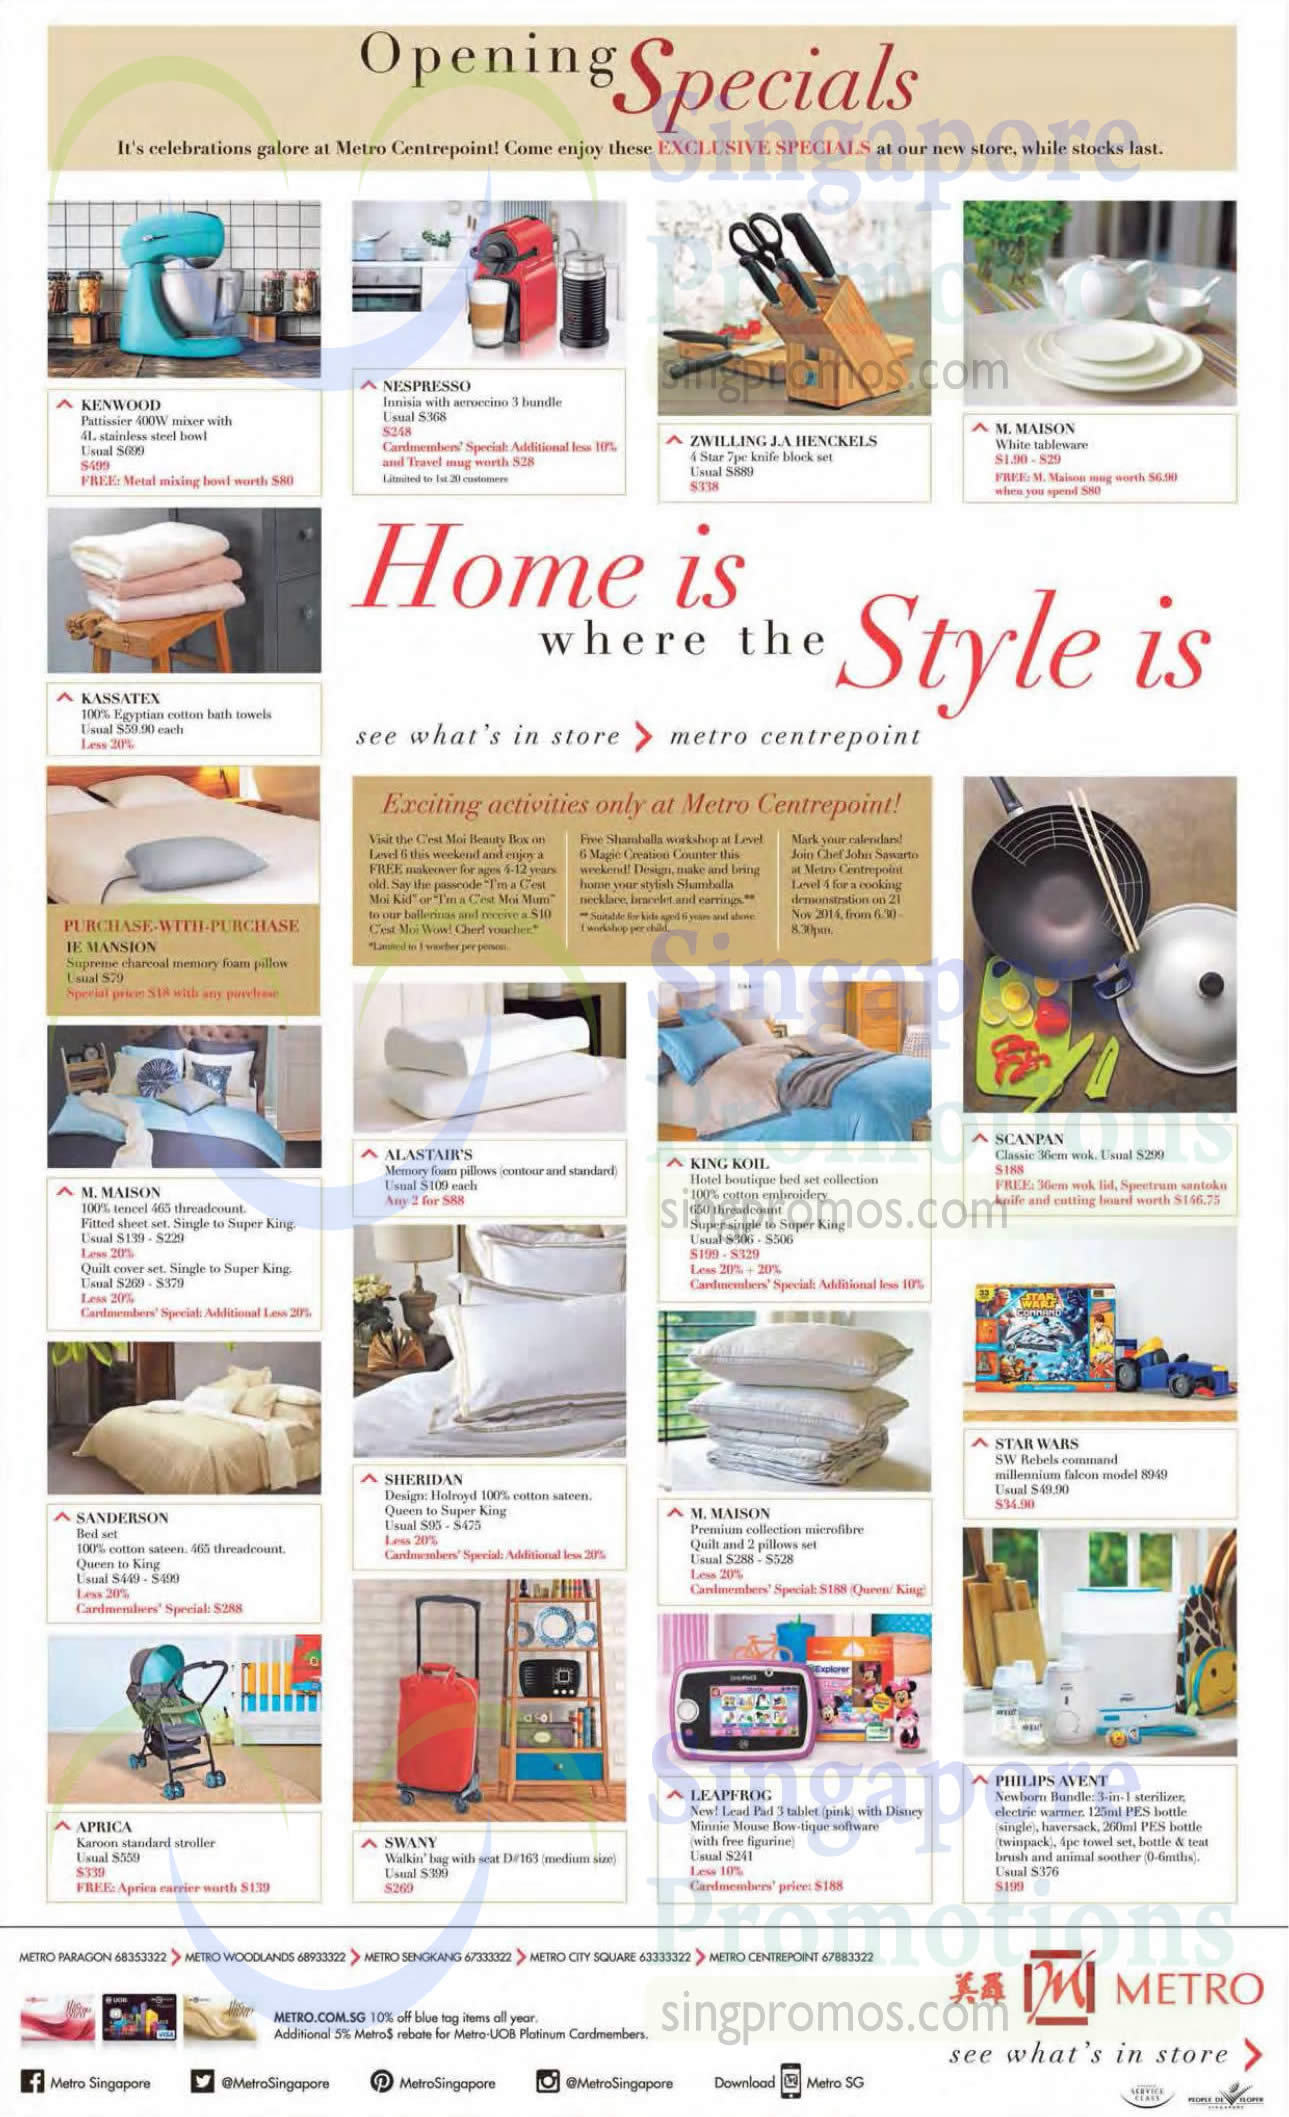 Beddings, Baby Essentials, Kitchen Appliances, Toys, Fitted Sheet Sets, Quilt Sets, Pillows, Strollers, Kenwood, King Koil, Aprica